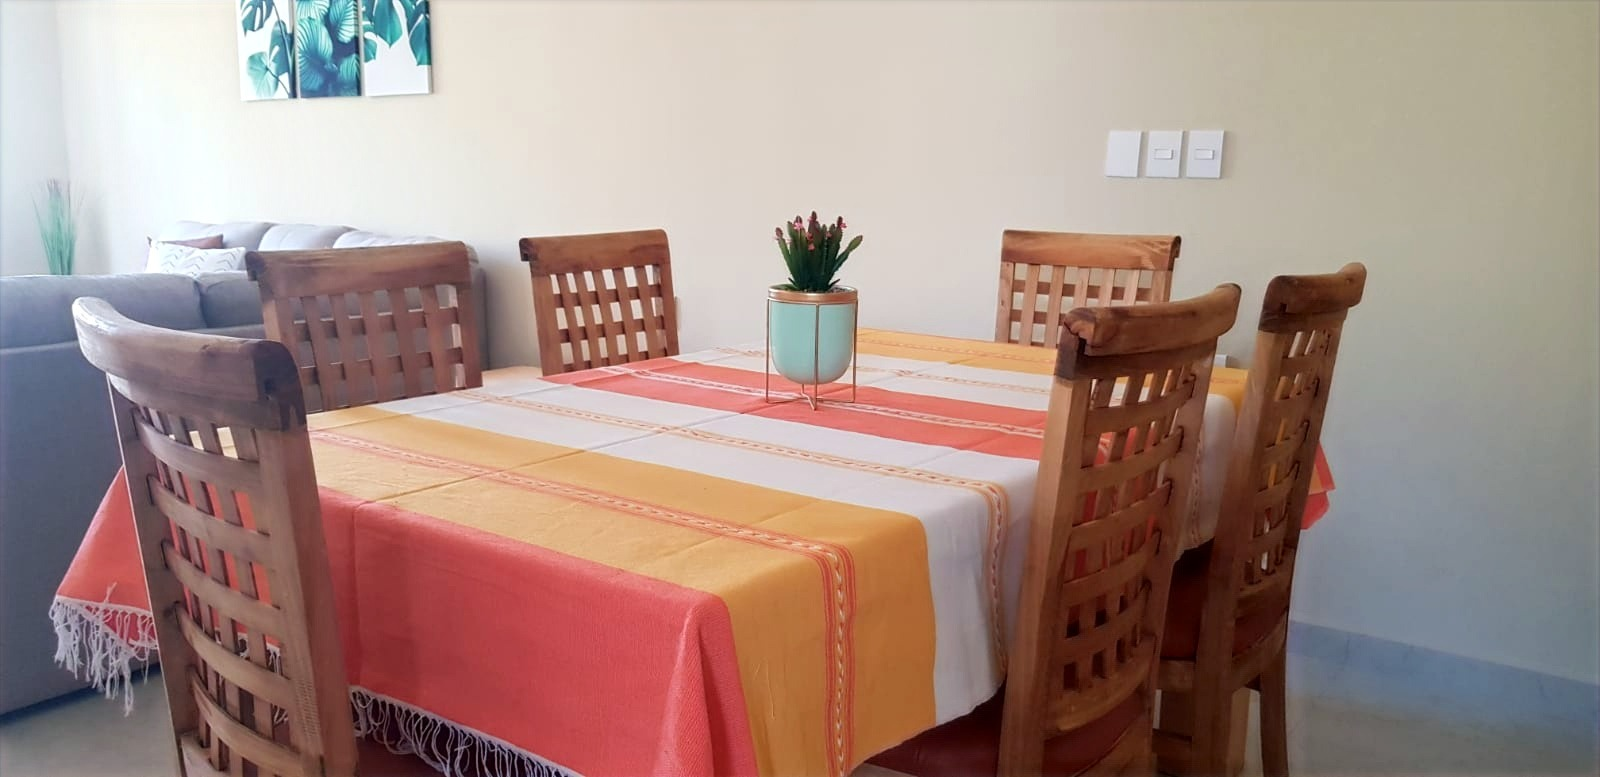 Dining table with Mexican decor.